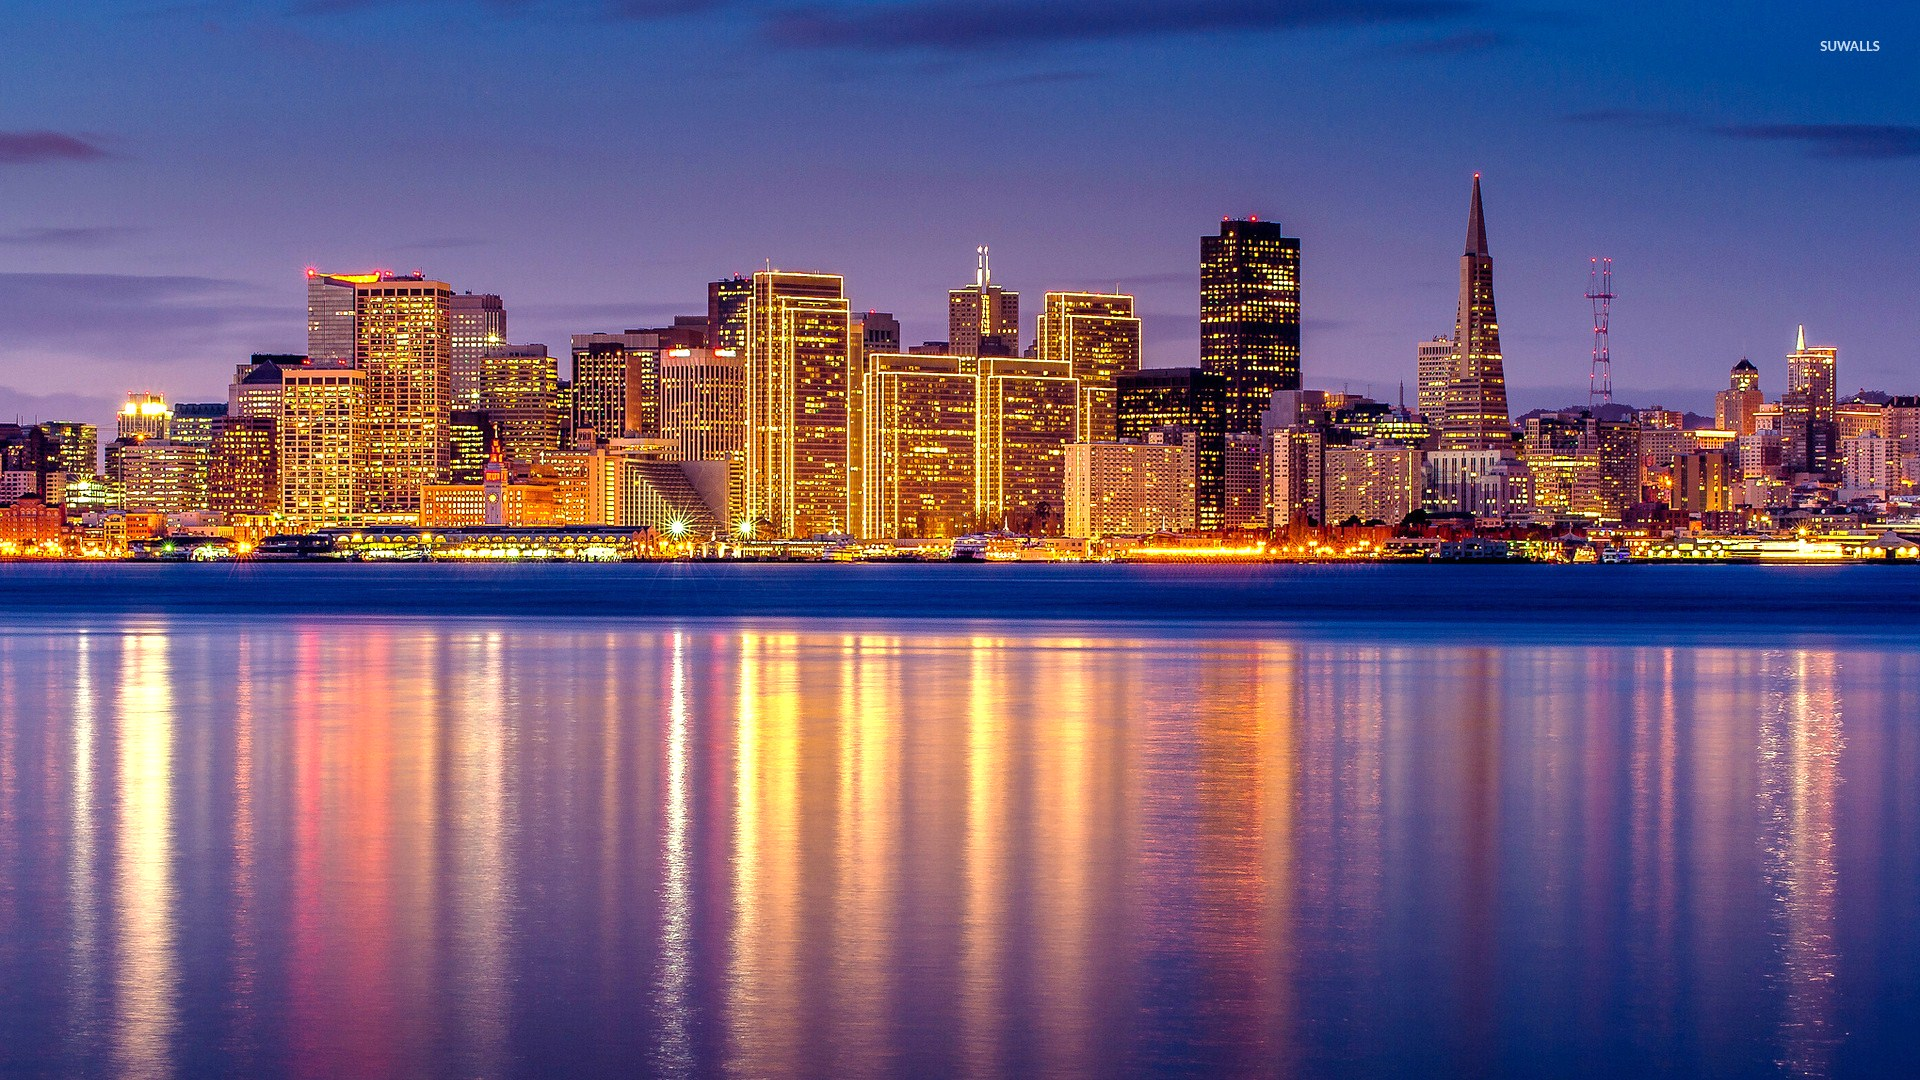 san-francisco-4k-hd-wallpapers-unabuenaidea.es (22)